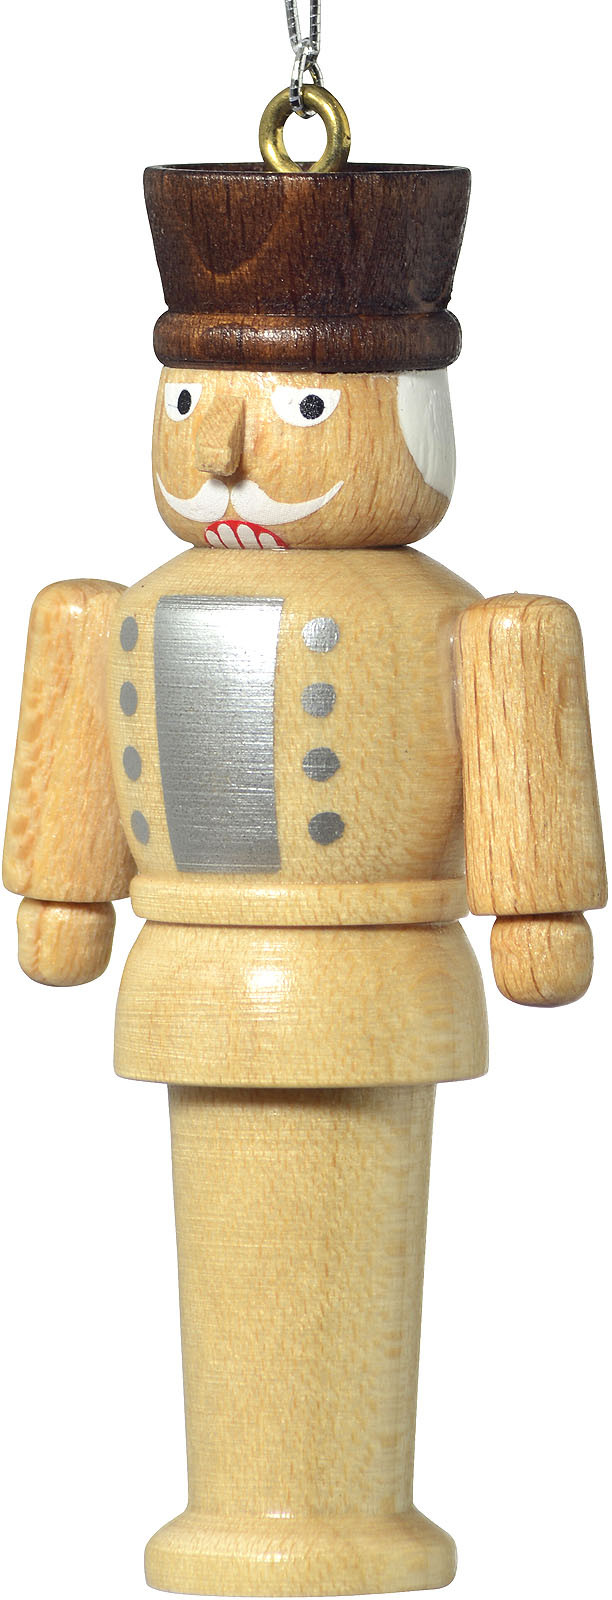 tree ornament, nutcracker, natural